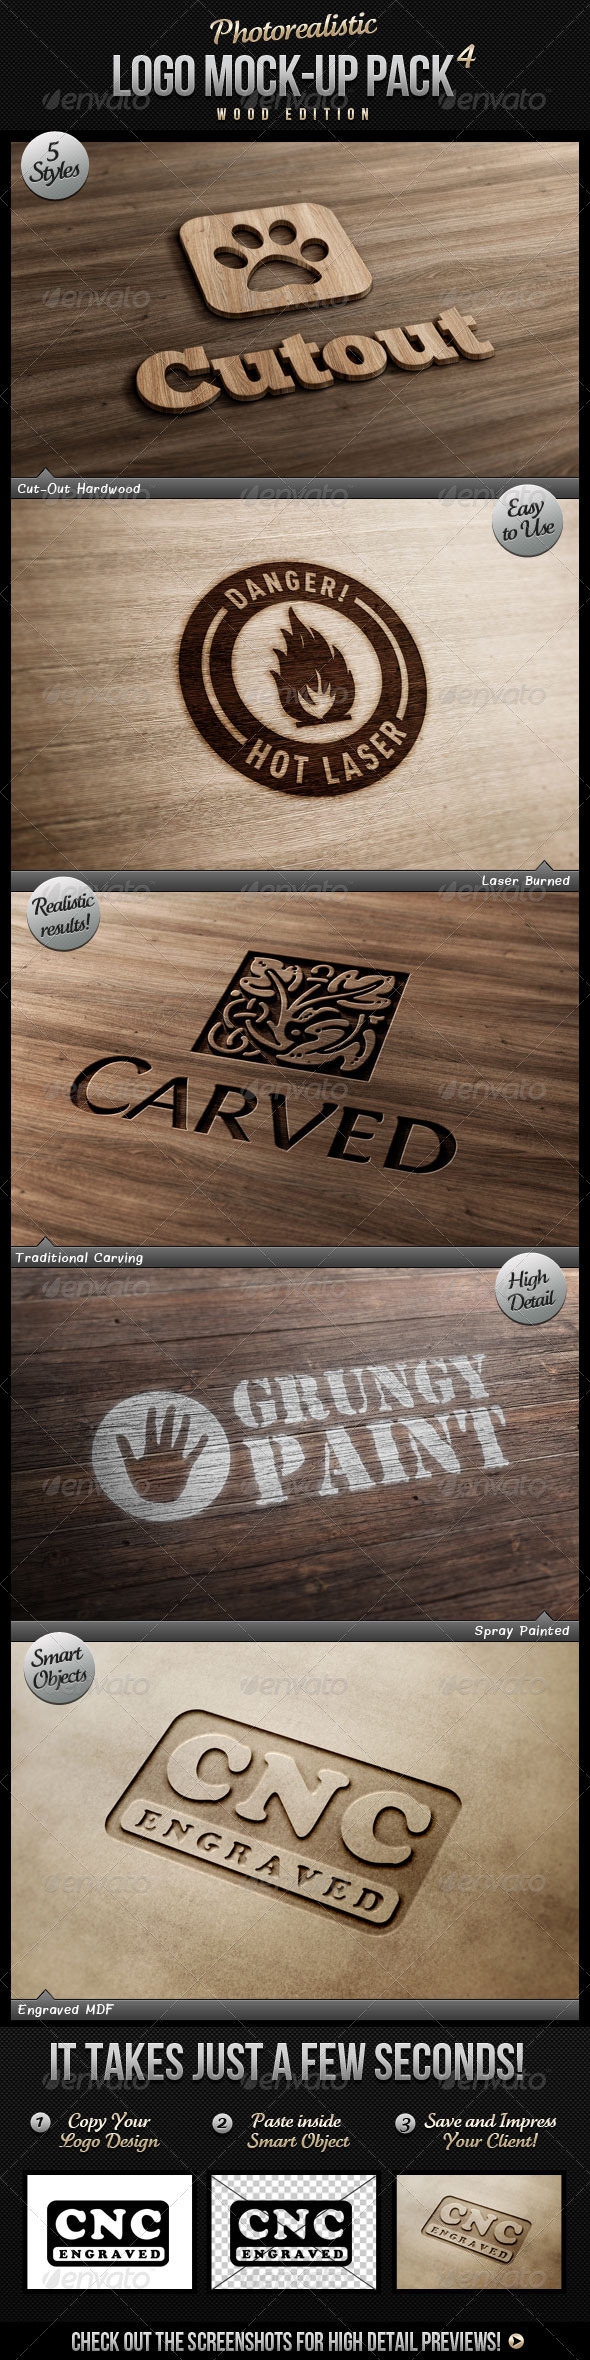 Wood Graphics, Designs & Templates from GraphicRiver